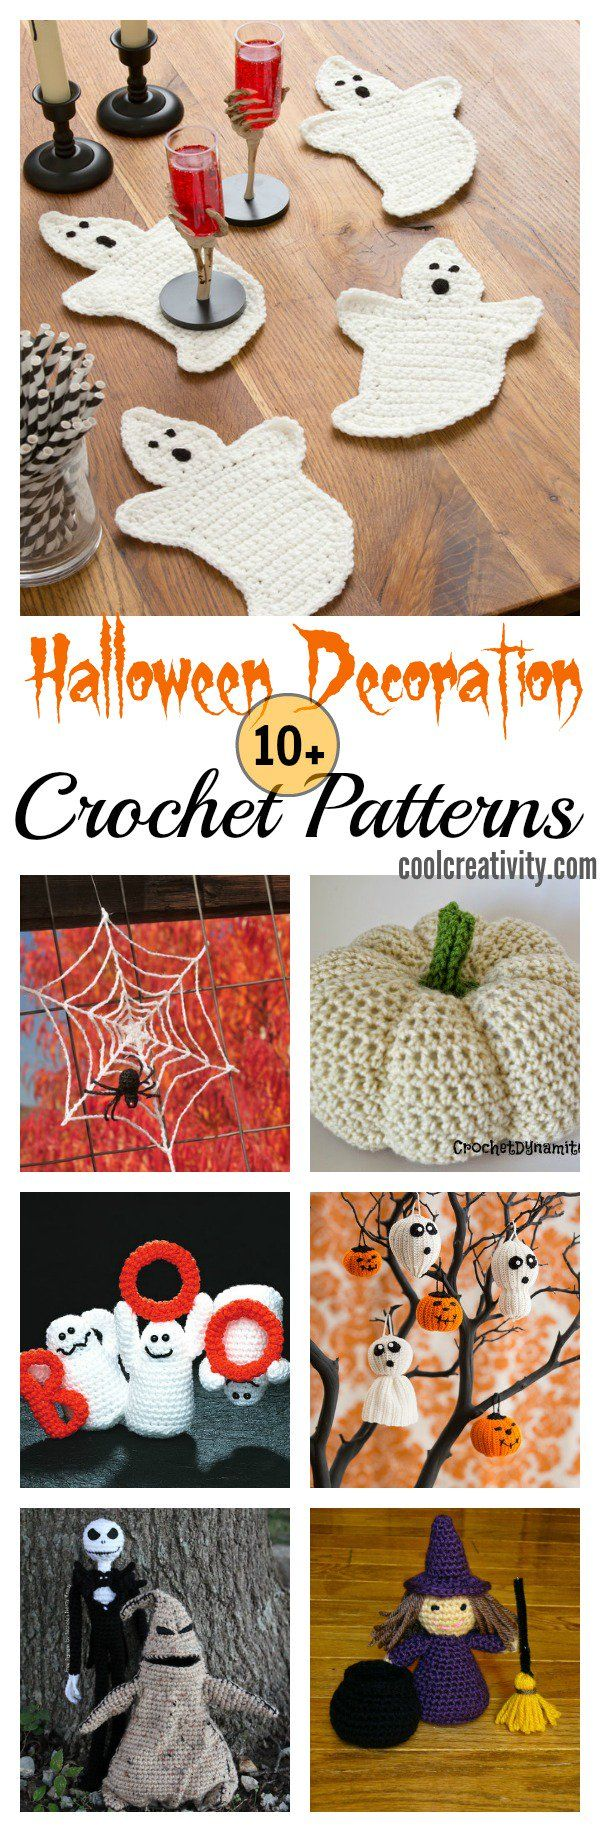 310 best halloween costumes crafts images on pinterest witch 10 halloween decoration free crochet patterns bankloansurffo Image collections